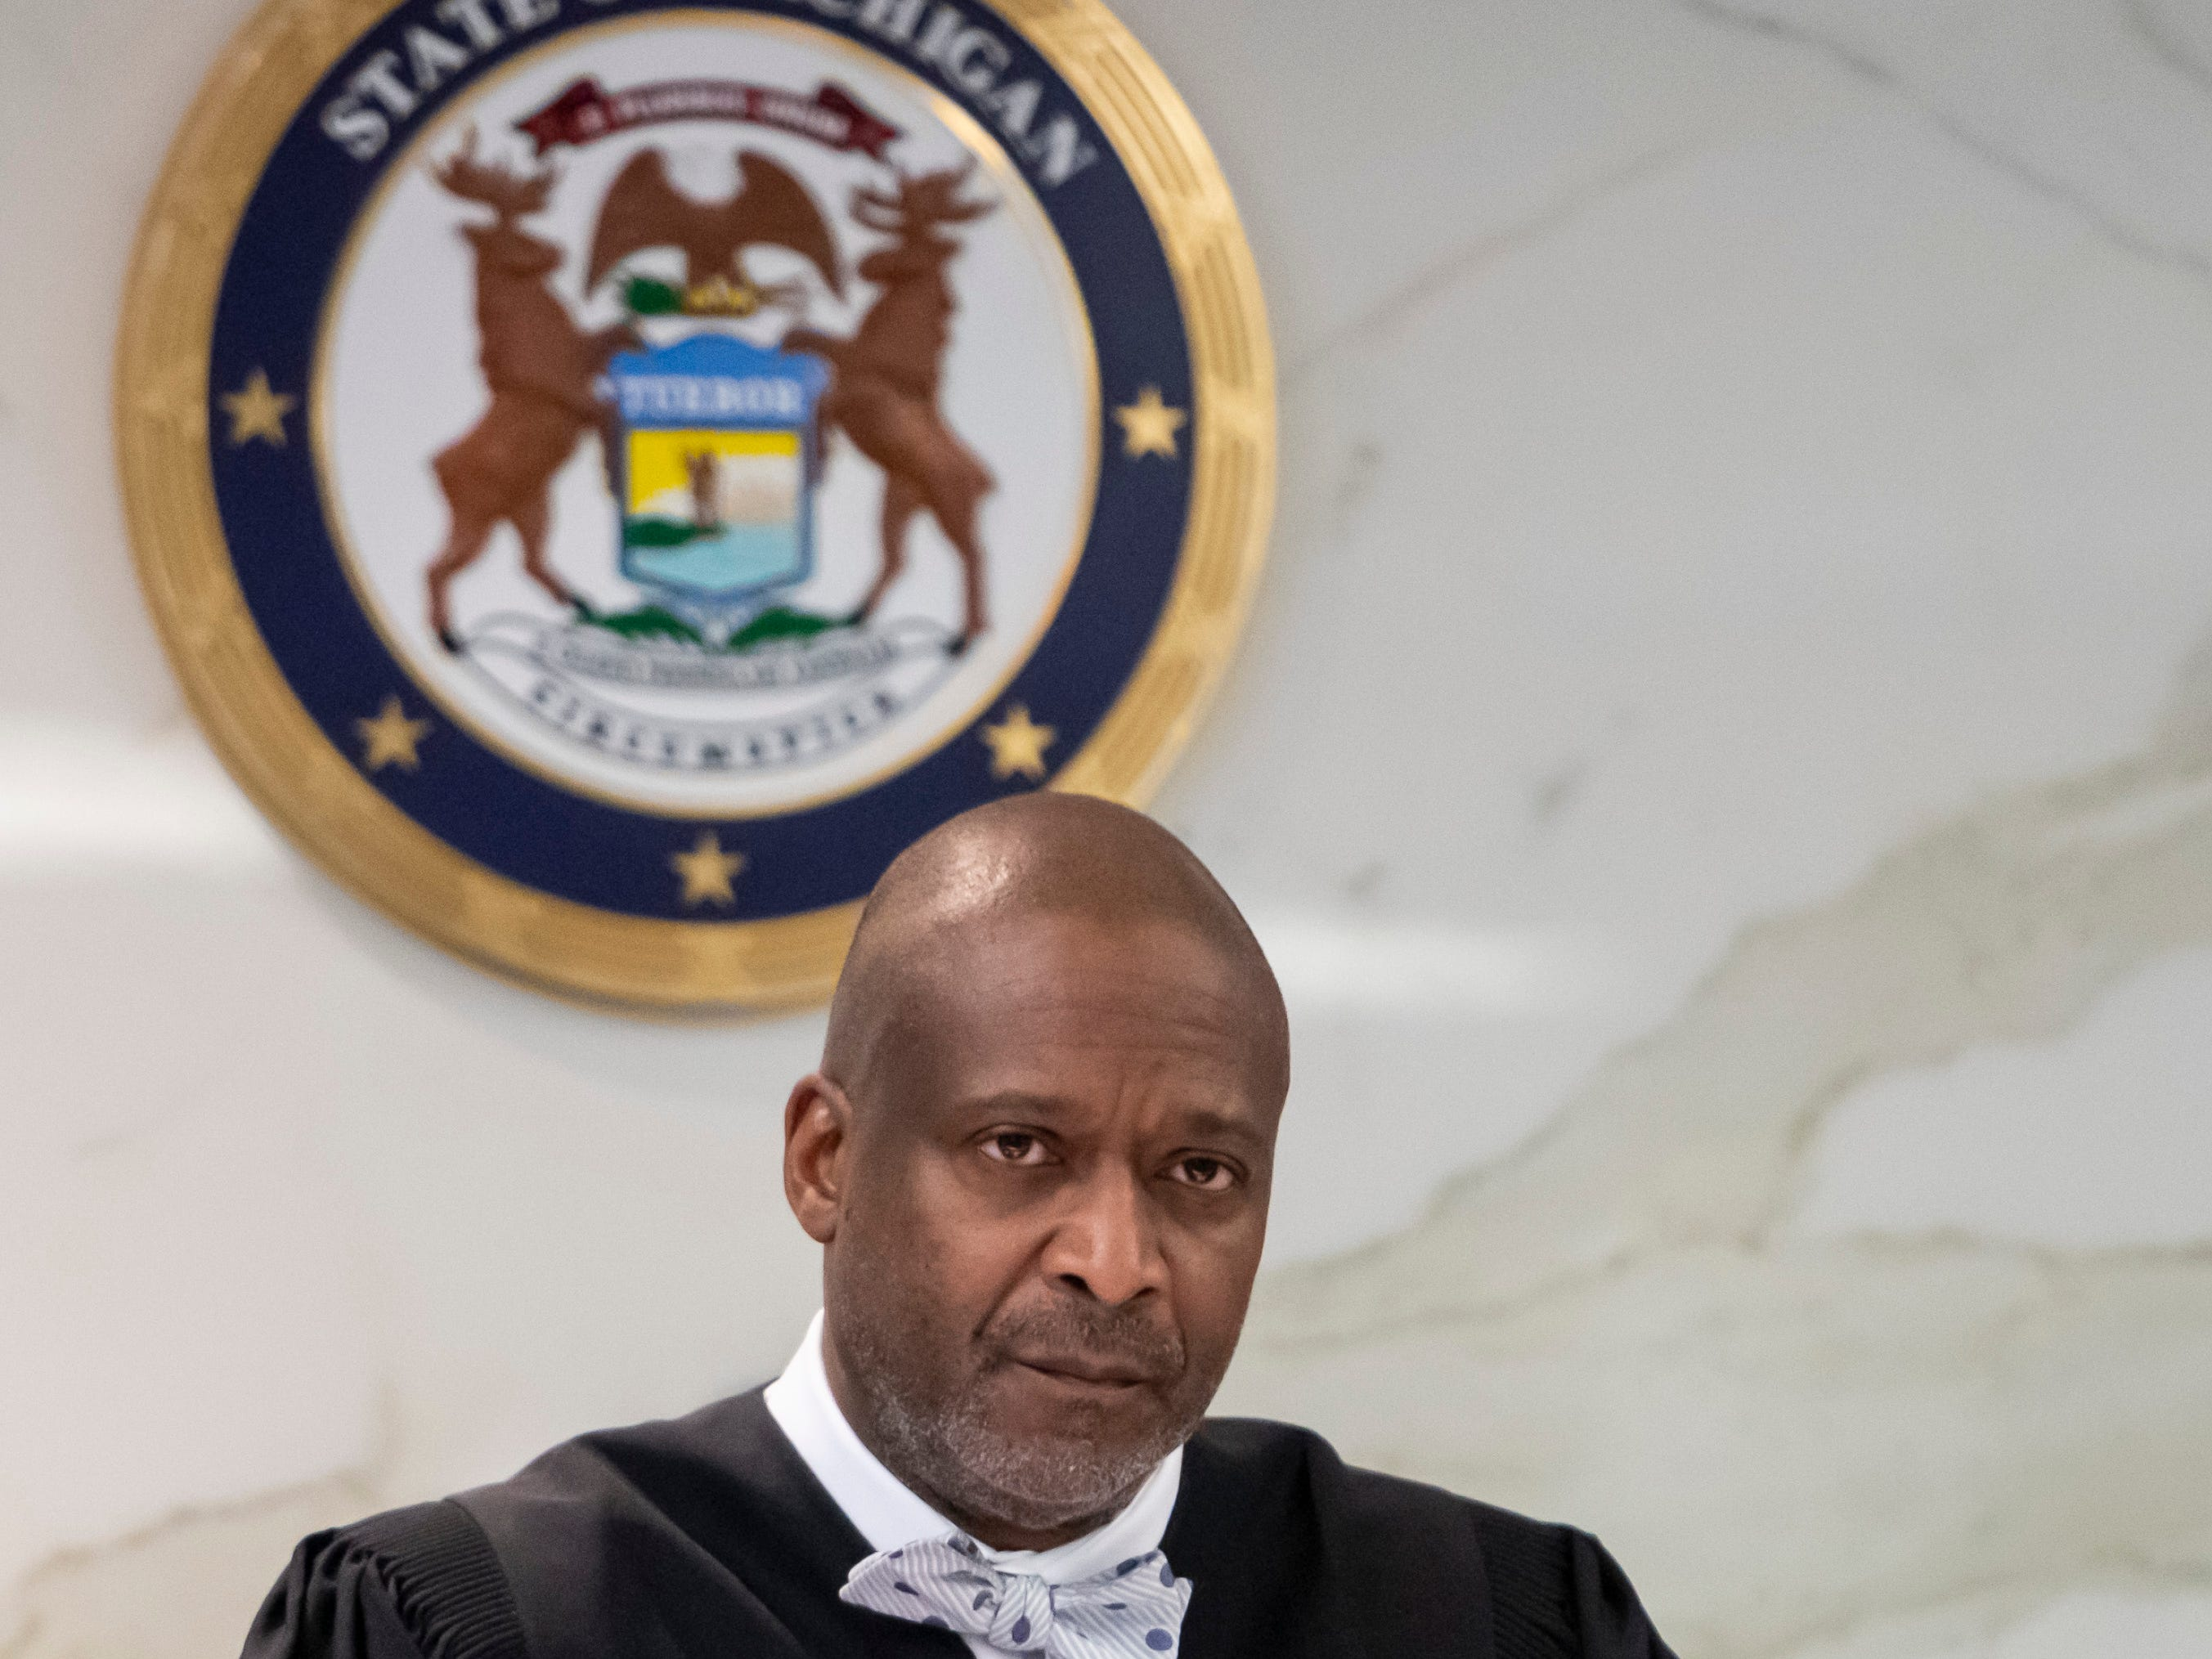 Judge Michael Wagner prepares to start a preliminary hearing for Pastor Albert Weathers in the death of Kelly Stough, at 36th District Court in Detroit, Feb. 25, 2019,